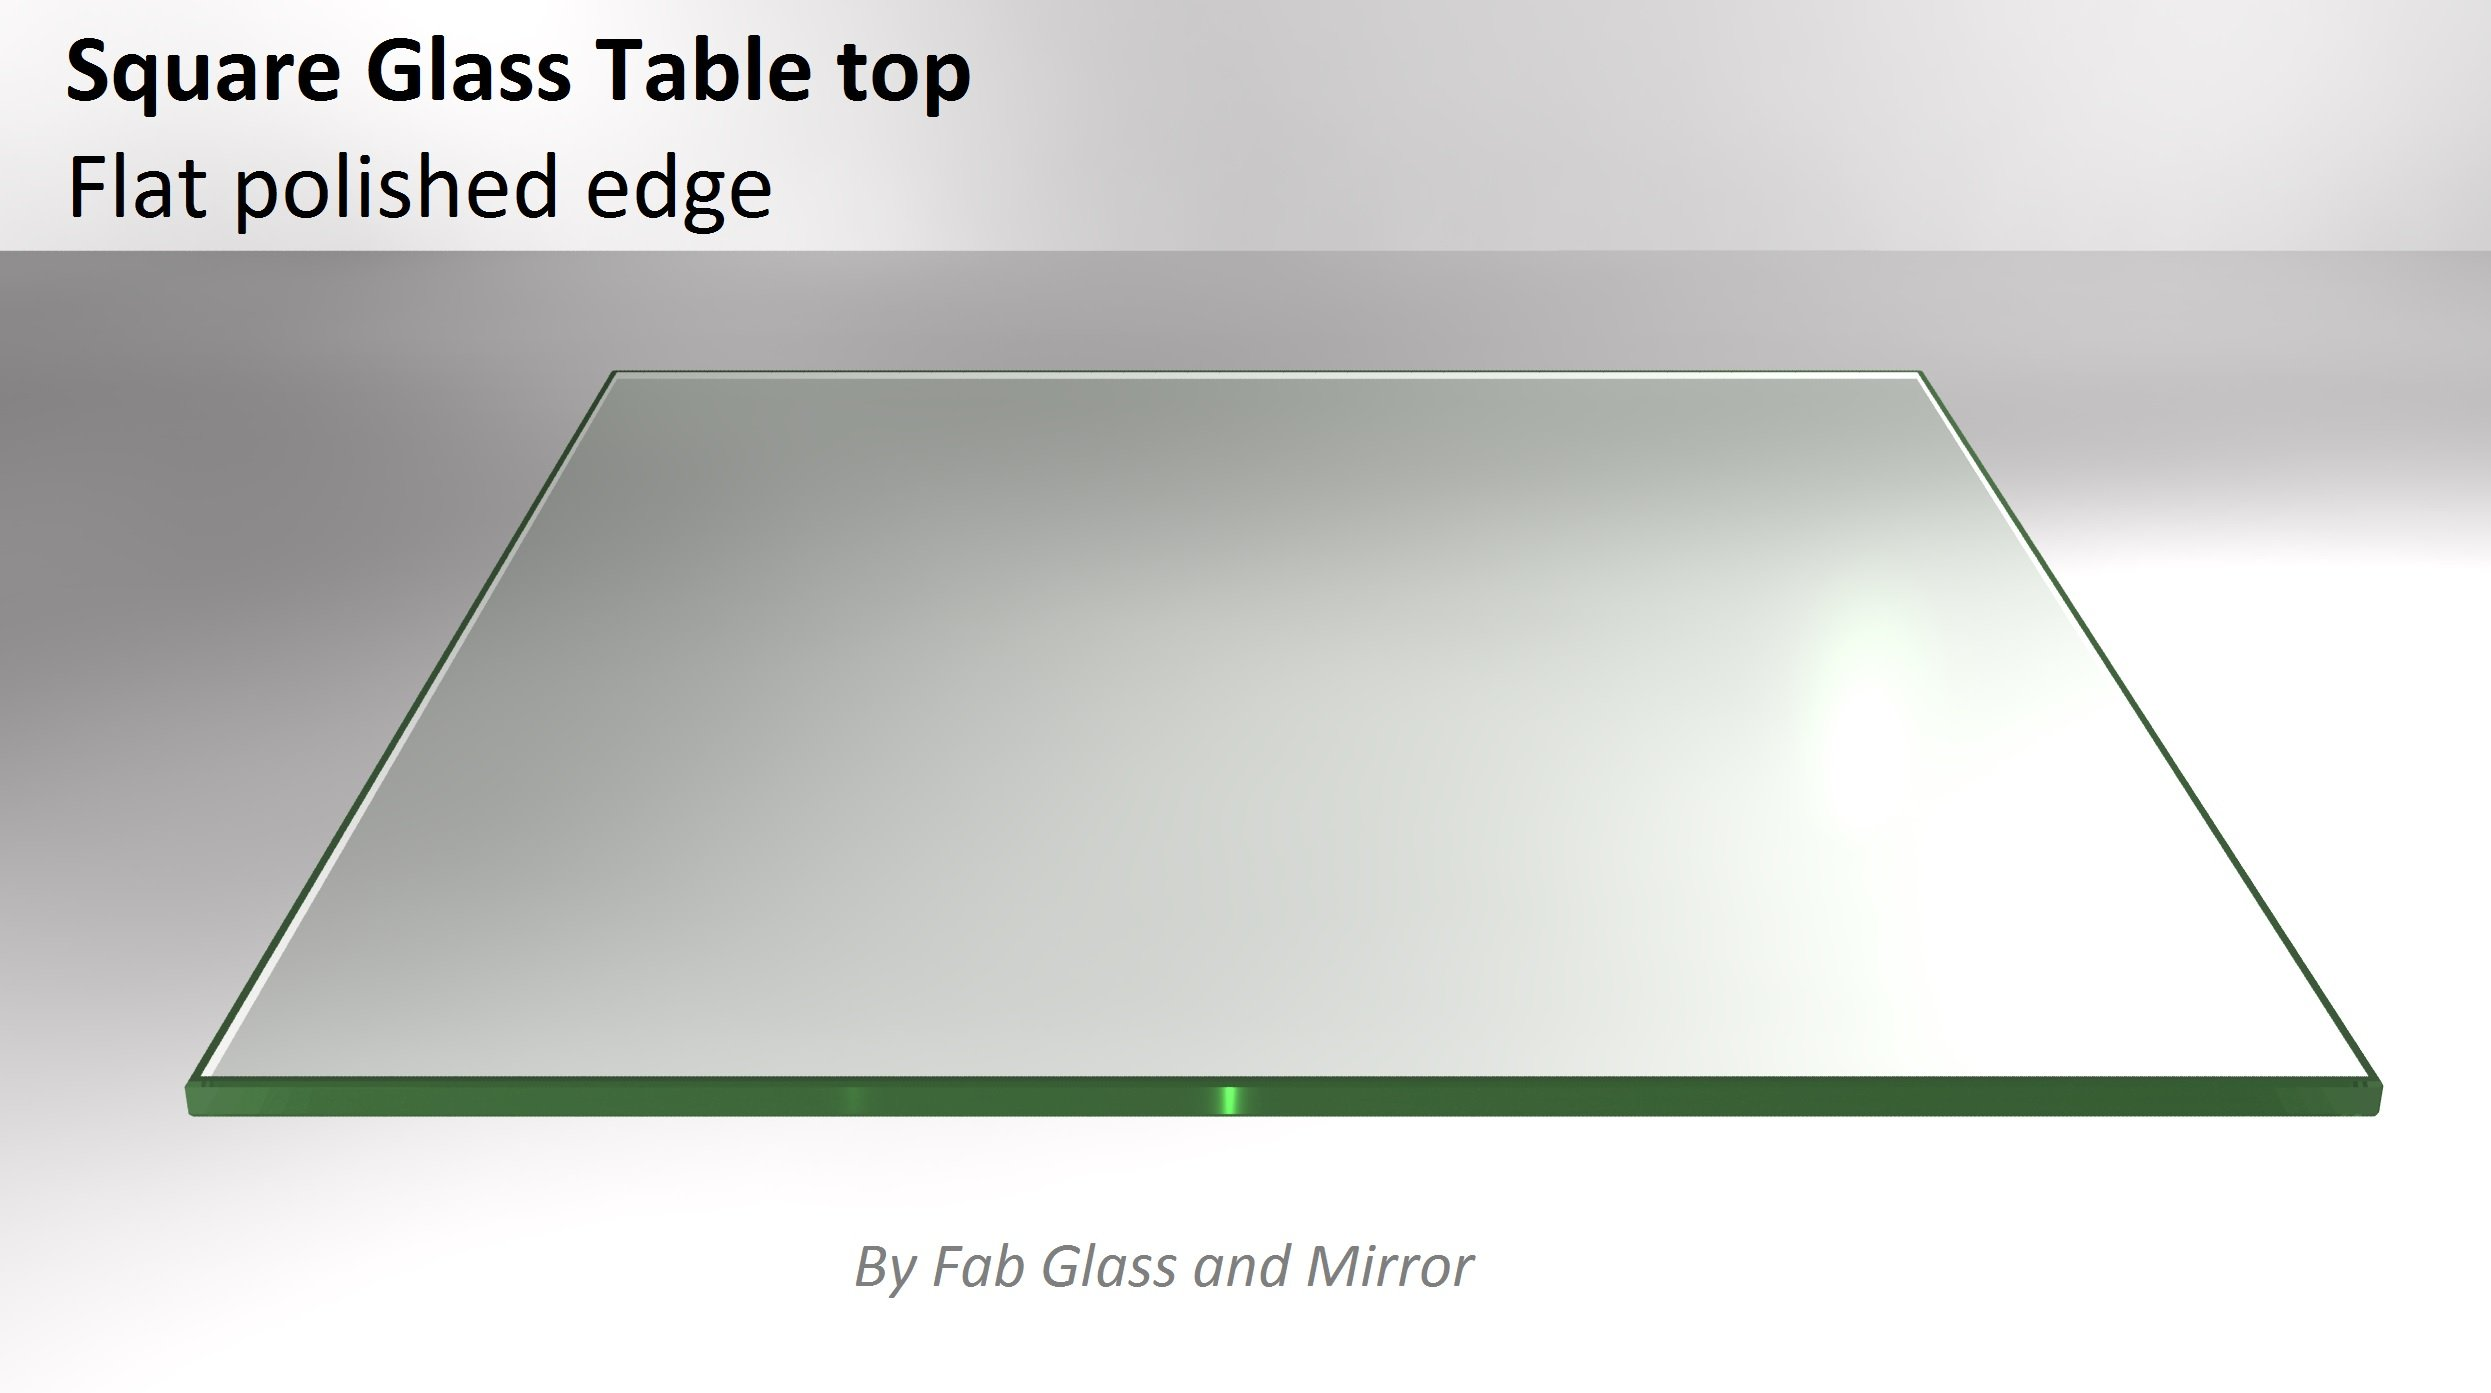 24'' Inch Square Clear Glass Table Top 1/4'' Thick Flat Polished Tempered Eased Corners by Fab Glass and Mirror